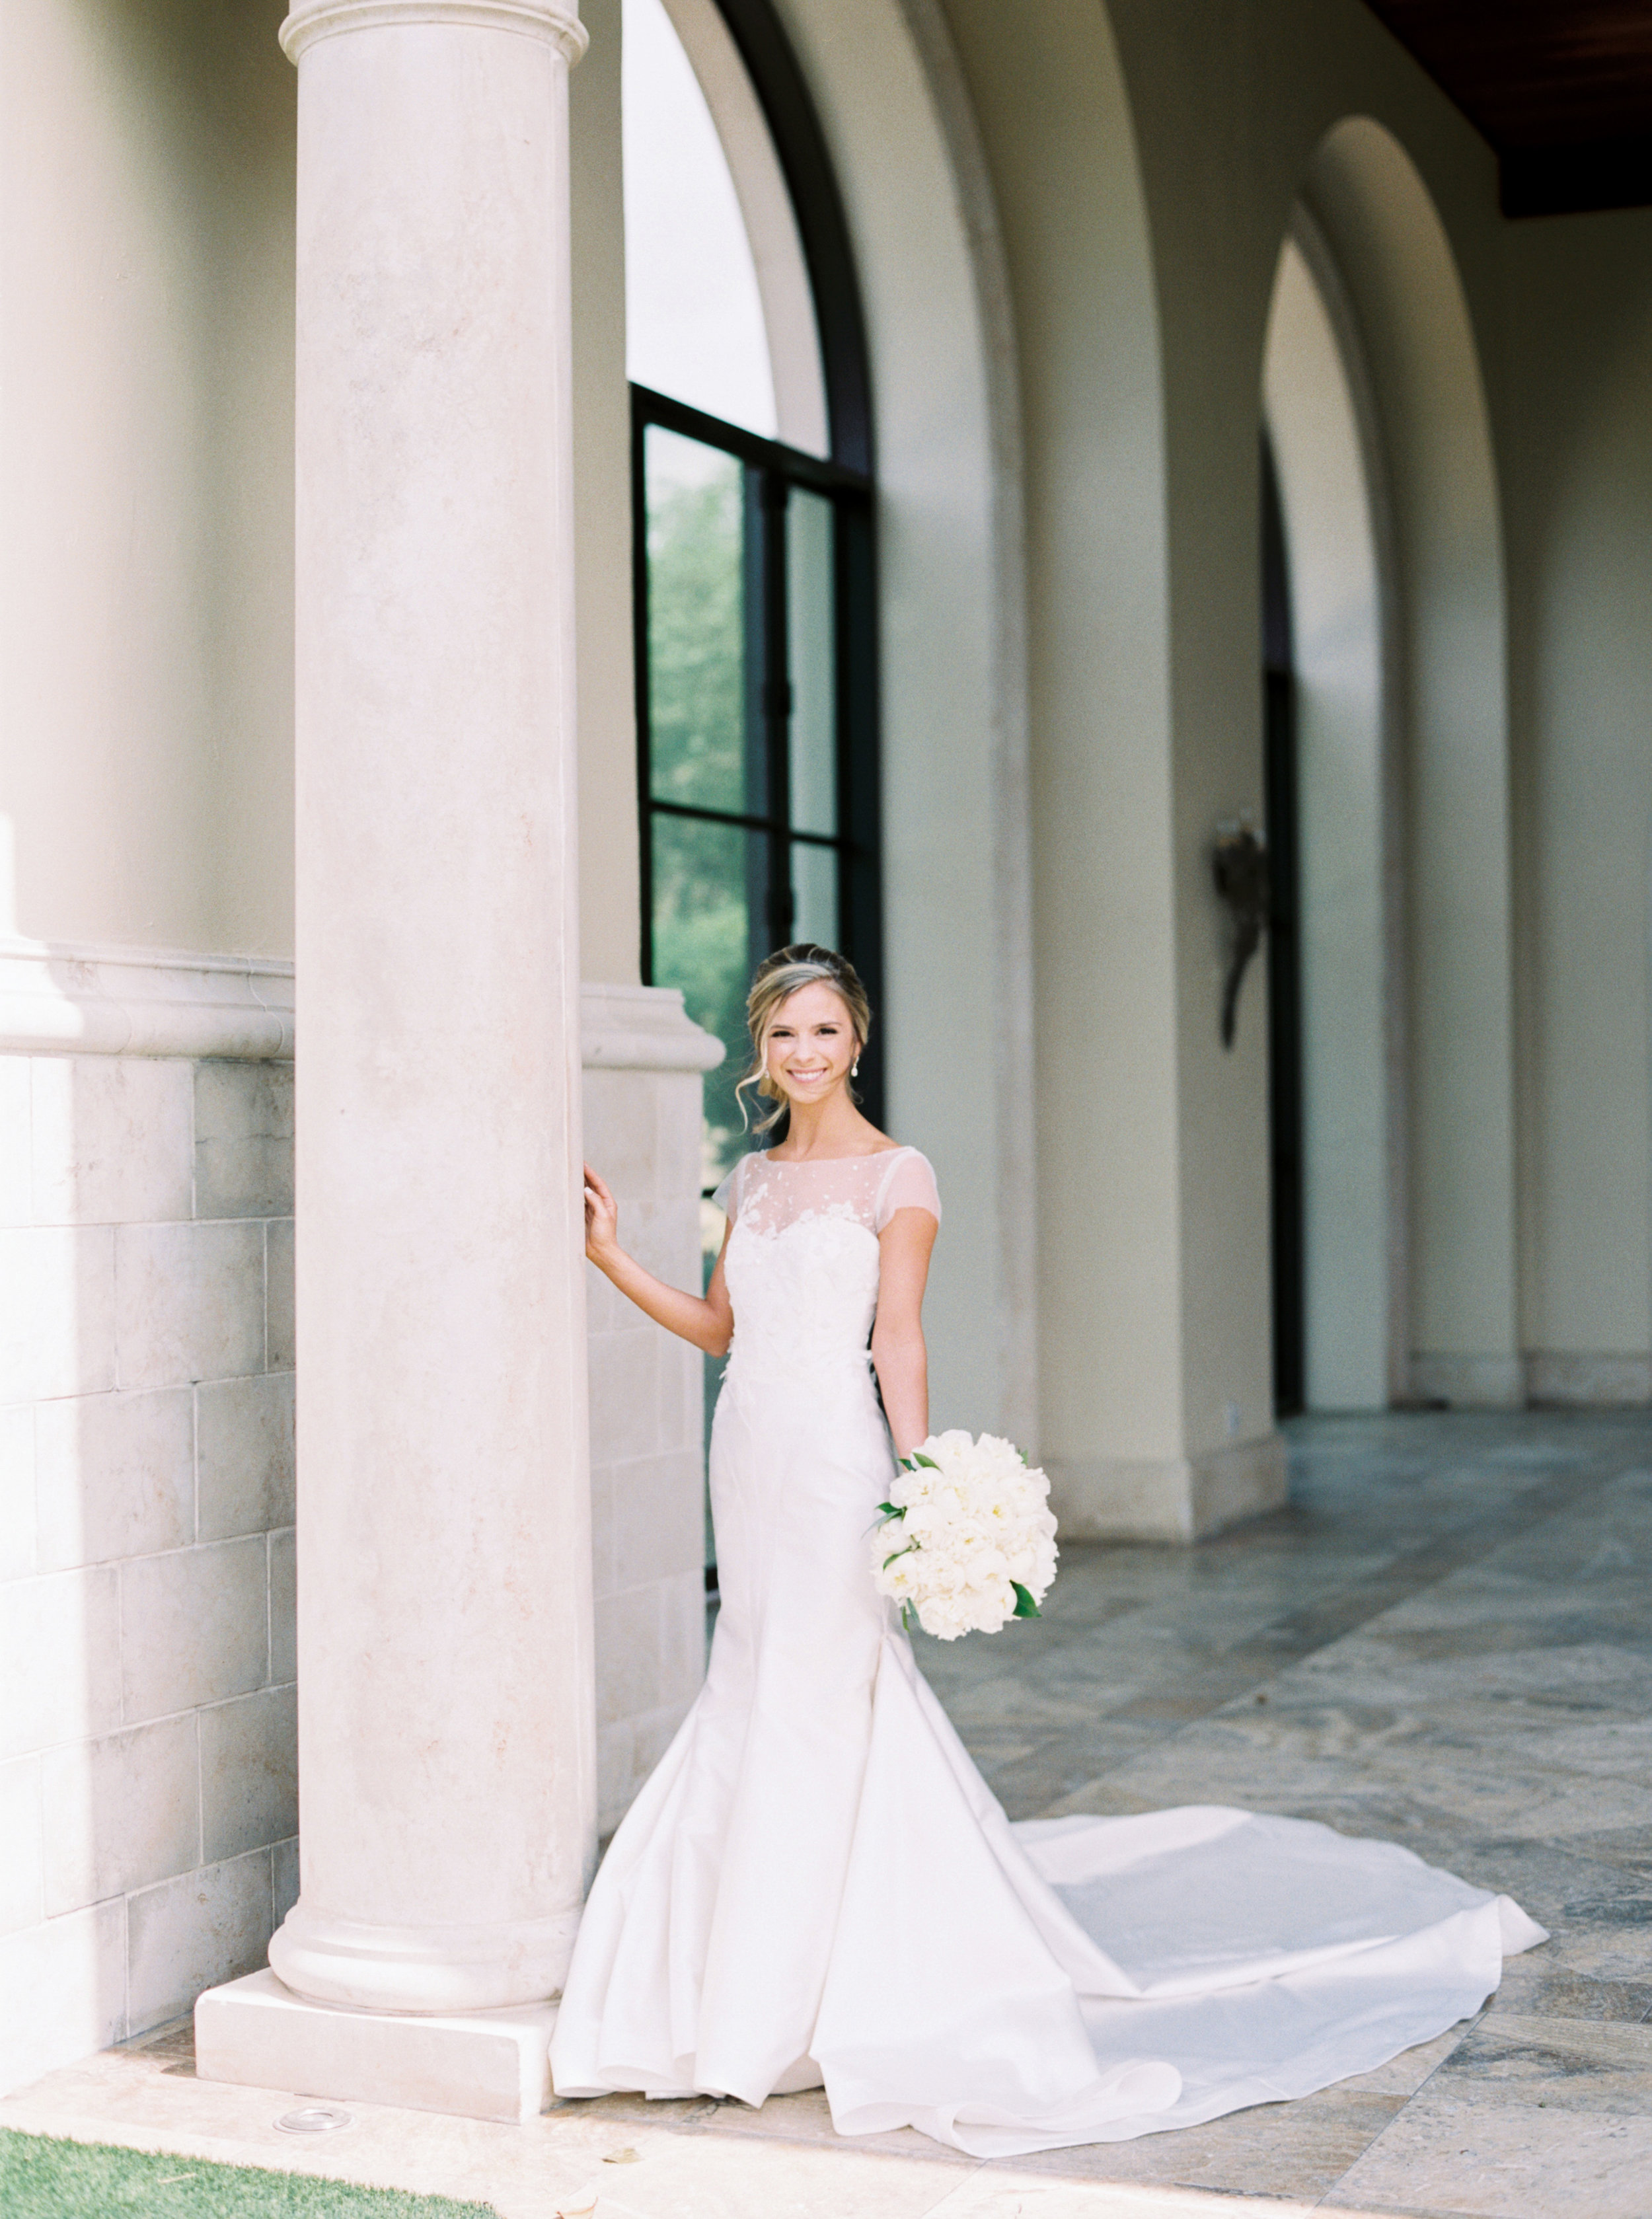 top 5 indoor bridal venues in austin-3.jpg